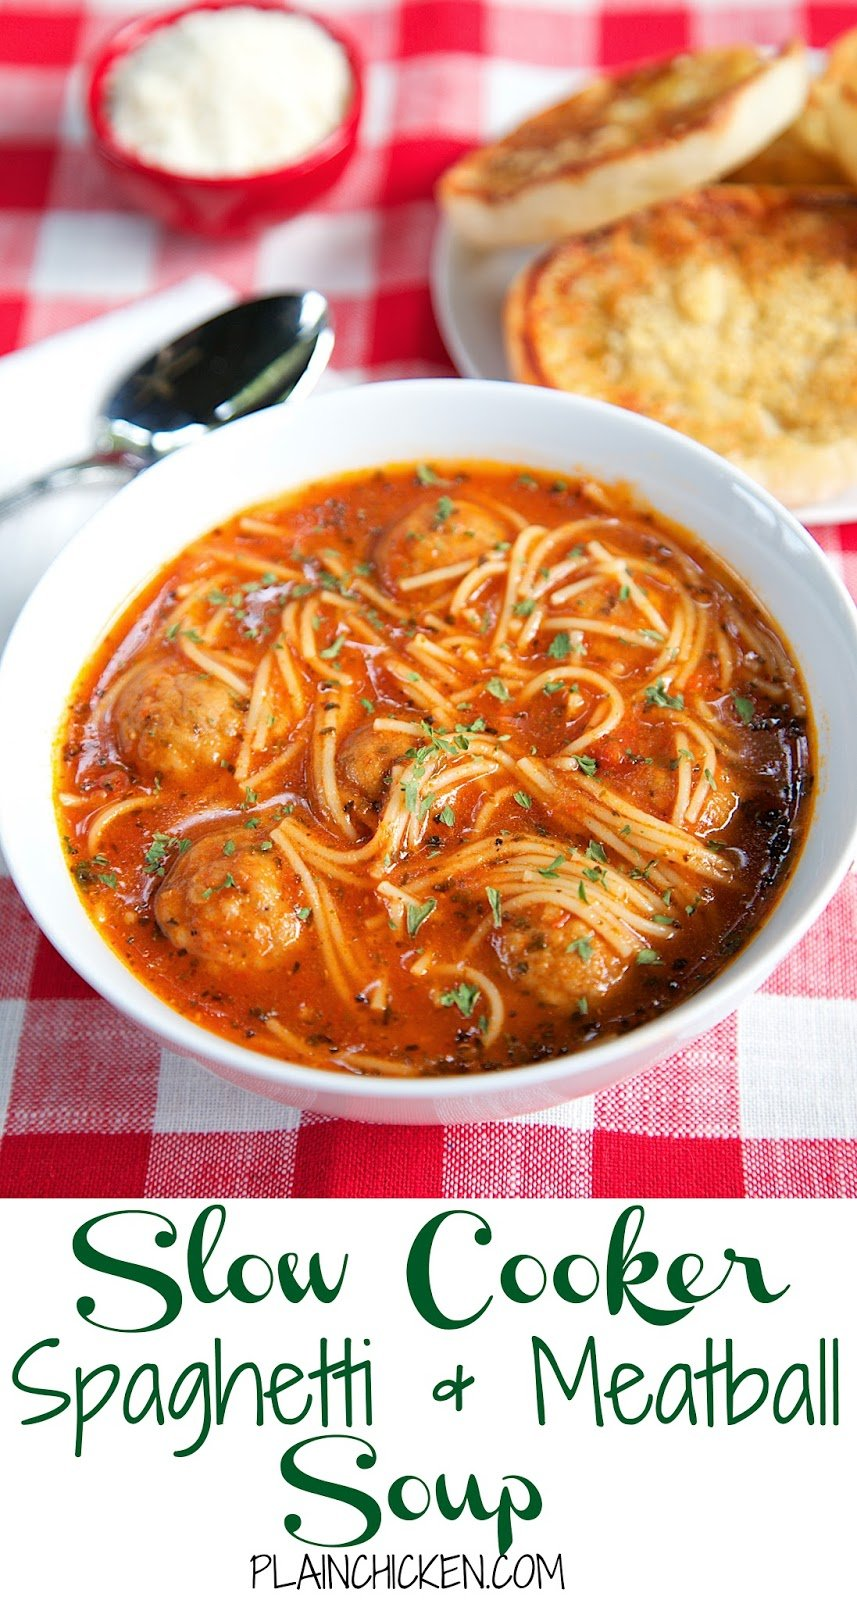 {Slow Cooker} Spaghetti and Meatball Soup recipe - frozen meatballs, spaghetti sauce, beef broth and angel hair pasta - This slow cooker soup is such a fun twist to spaghetti night! It is SO good and super quick to throw together. Serve with some warm garlic bread for a quick and easy weeknight meal!